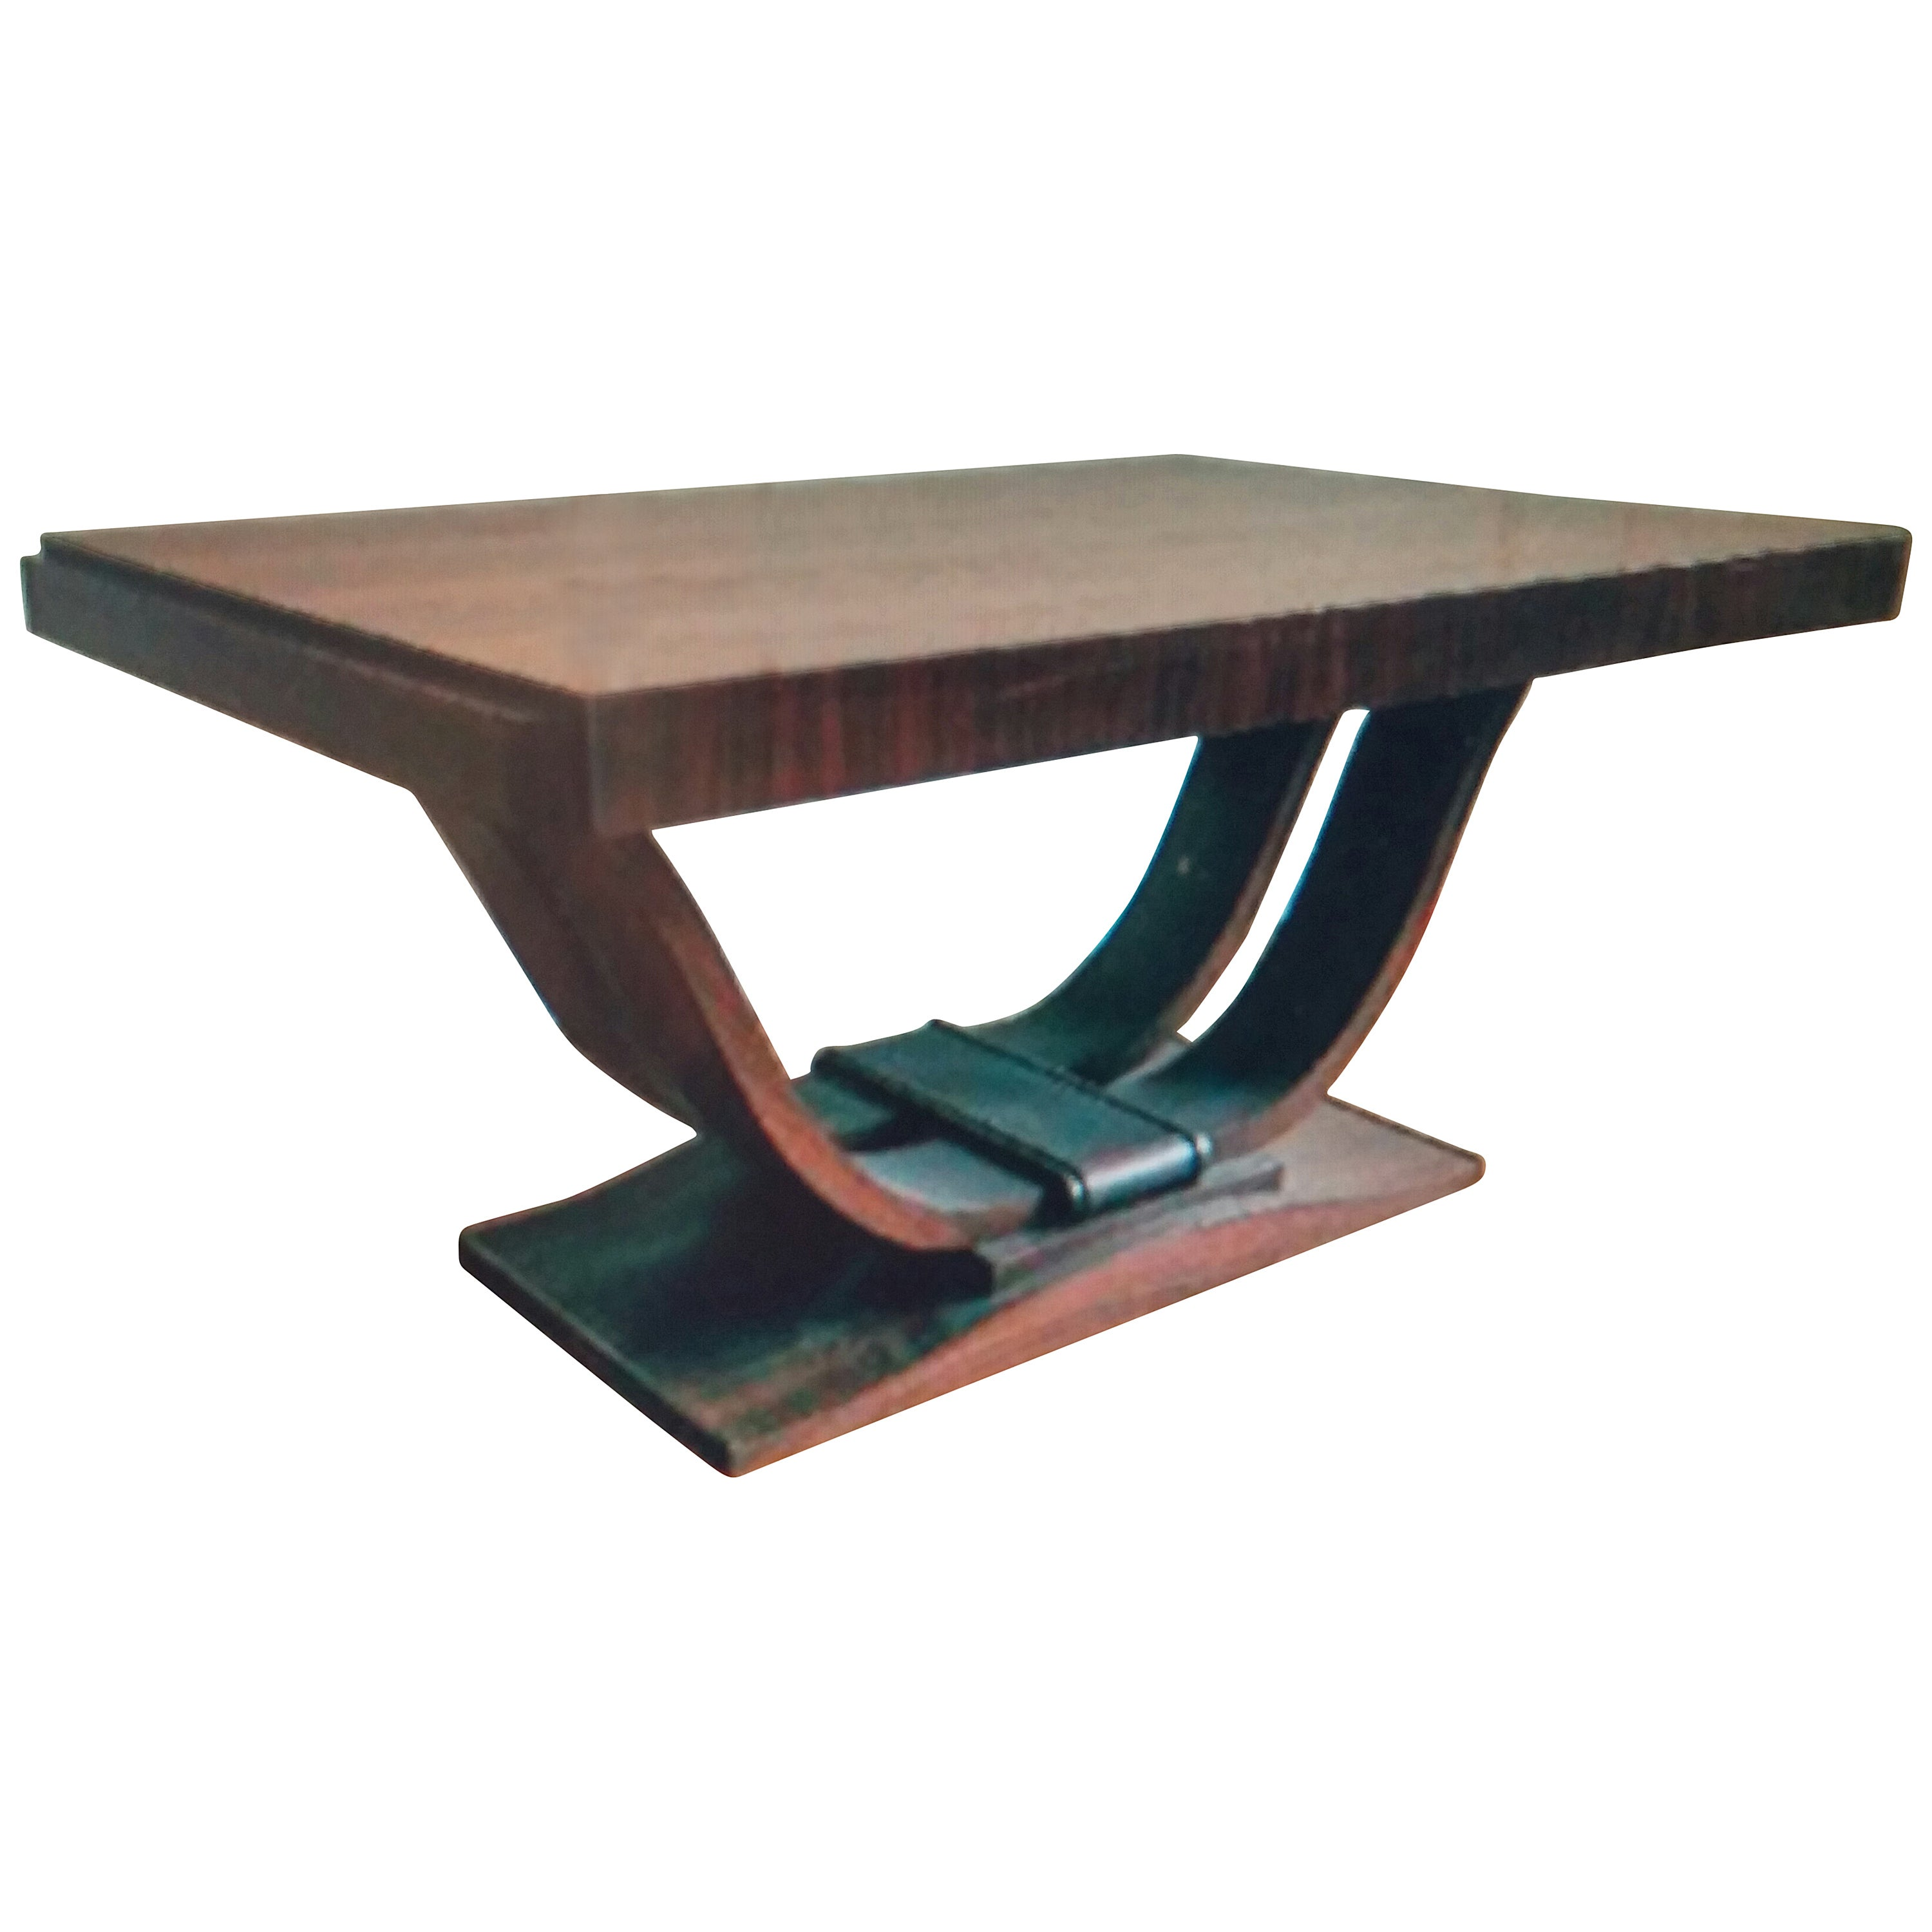 French Art Deco Dining Room Table or Desk